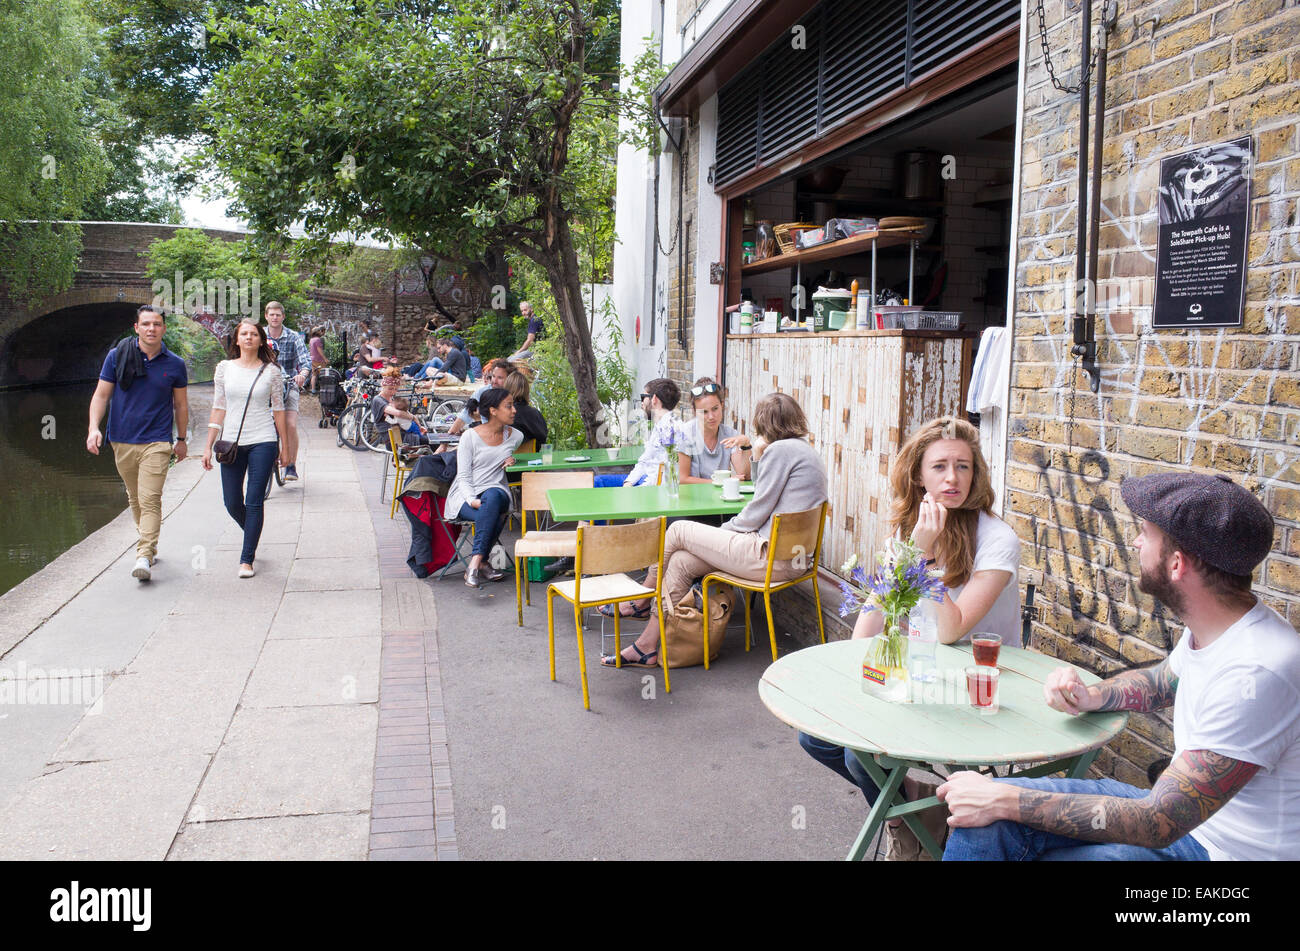 Trendy cafes and restaurants along the towpath of the Regent's Canal, Shoreditch, Hackney, London, England, - Stock Image